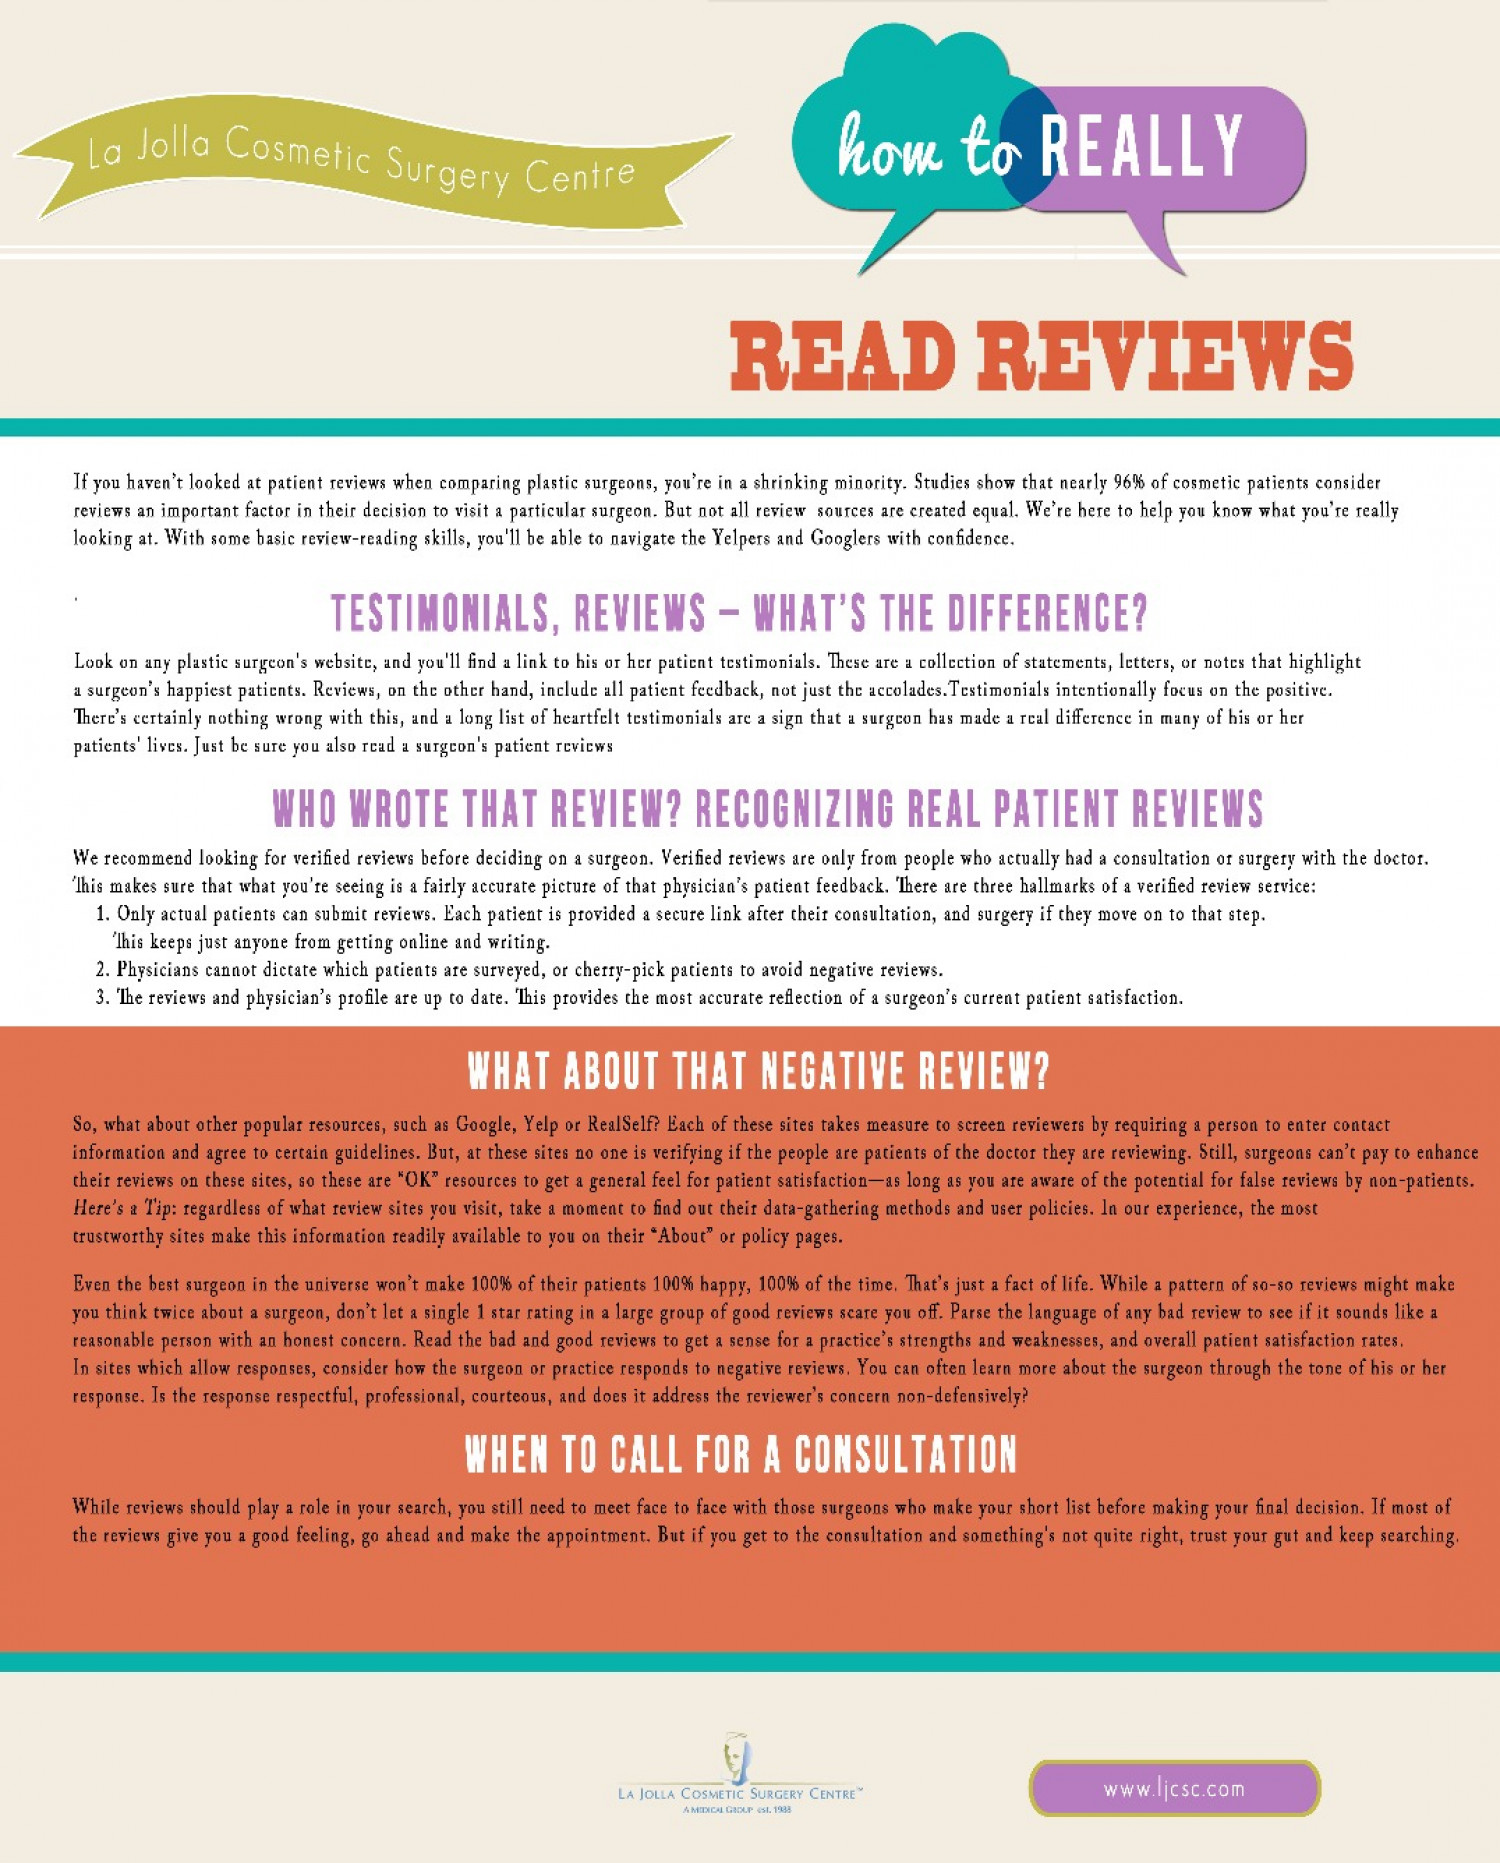 How to Really Read Reviews Infographic